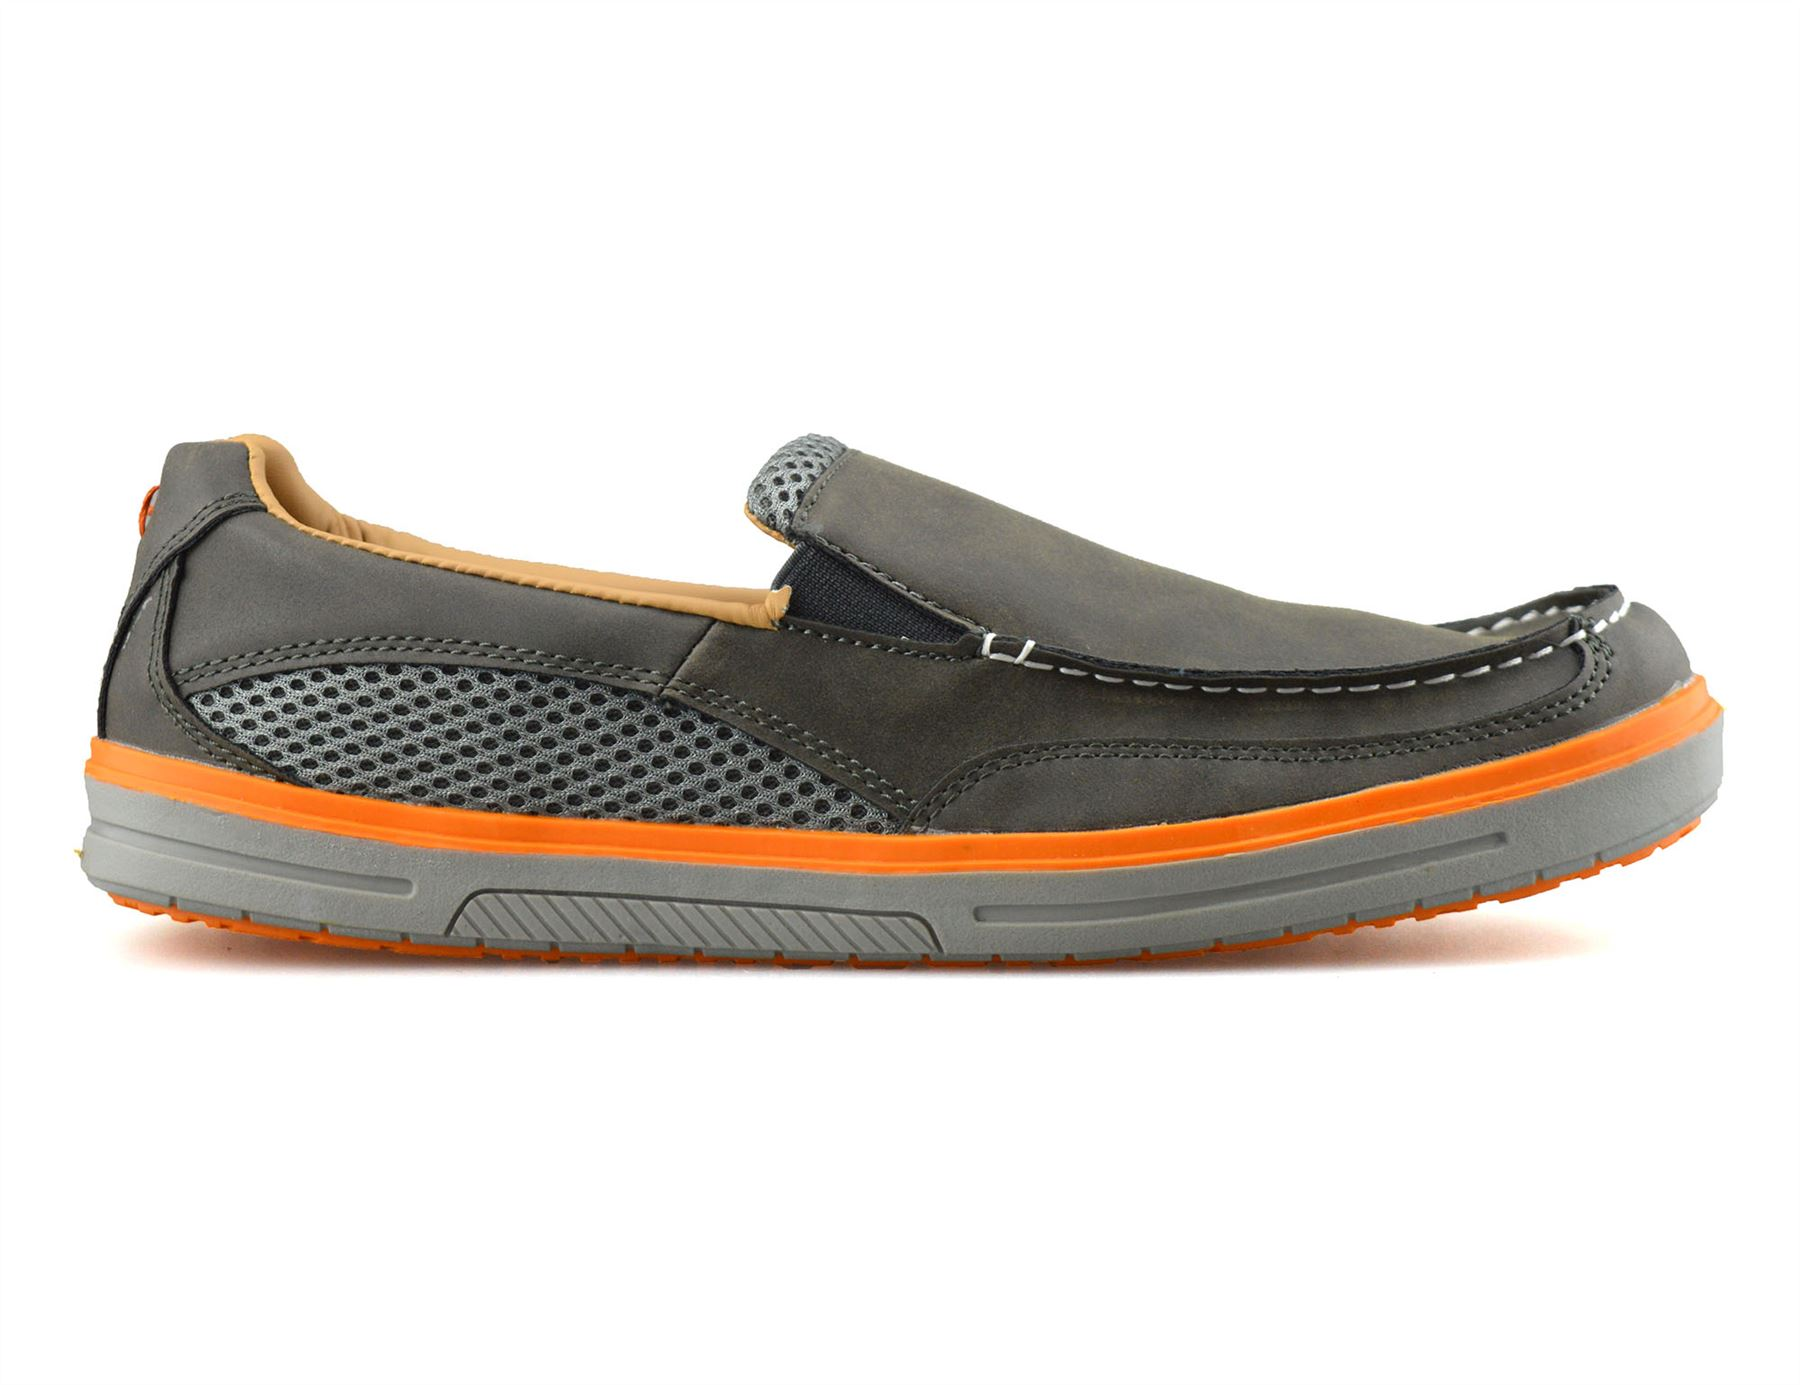 Mens-Casual-Memory-Foam-Slip-On-Walking-Loafers-Moccasin-Driving-Boat-Shoes-Size thumbnail 30